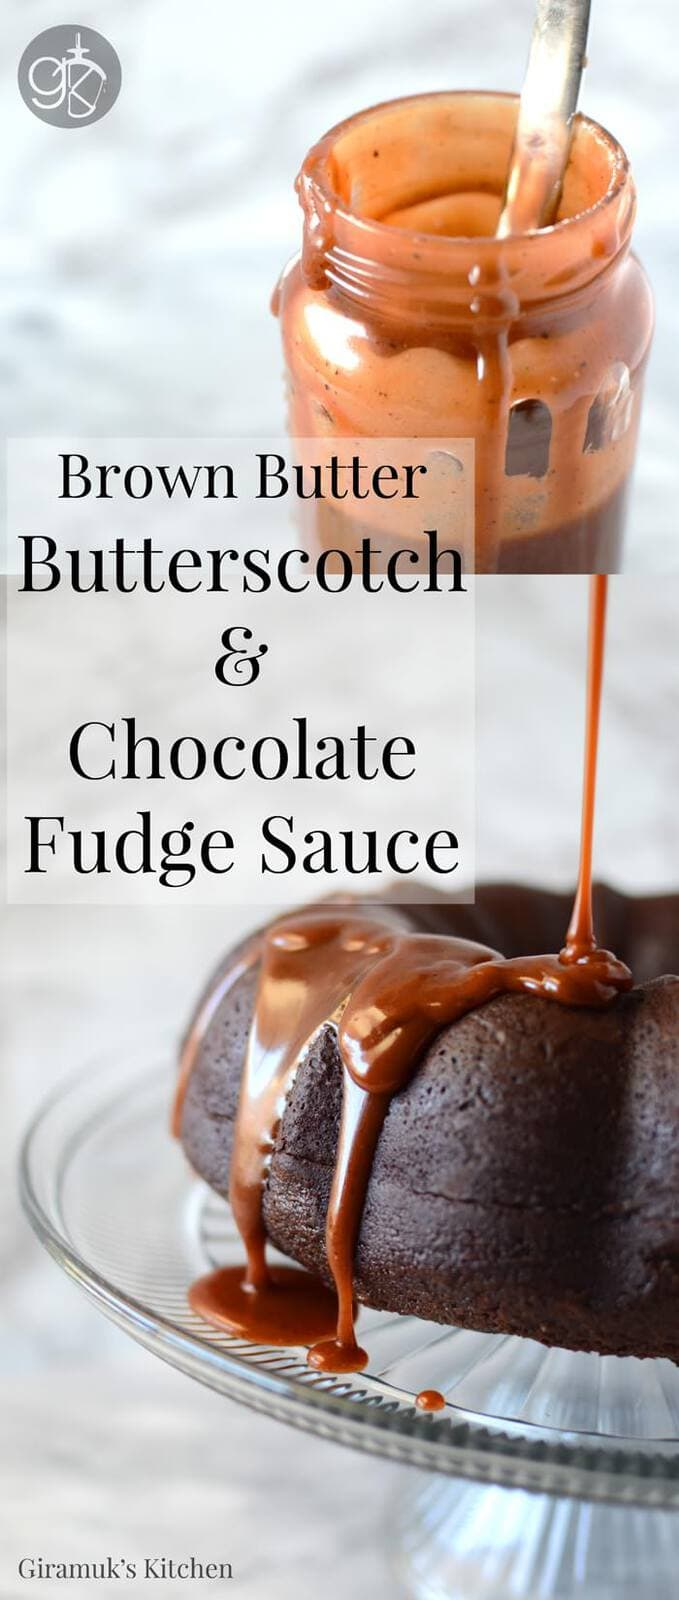 Brown Butter Butterscotch Chocolate Fudge sauce. Learn to make your butterscotch sauce even BETTER! Once you try this, you won't want regular butterscotch sauce ever again.